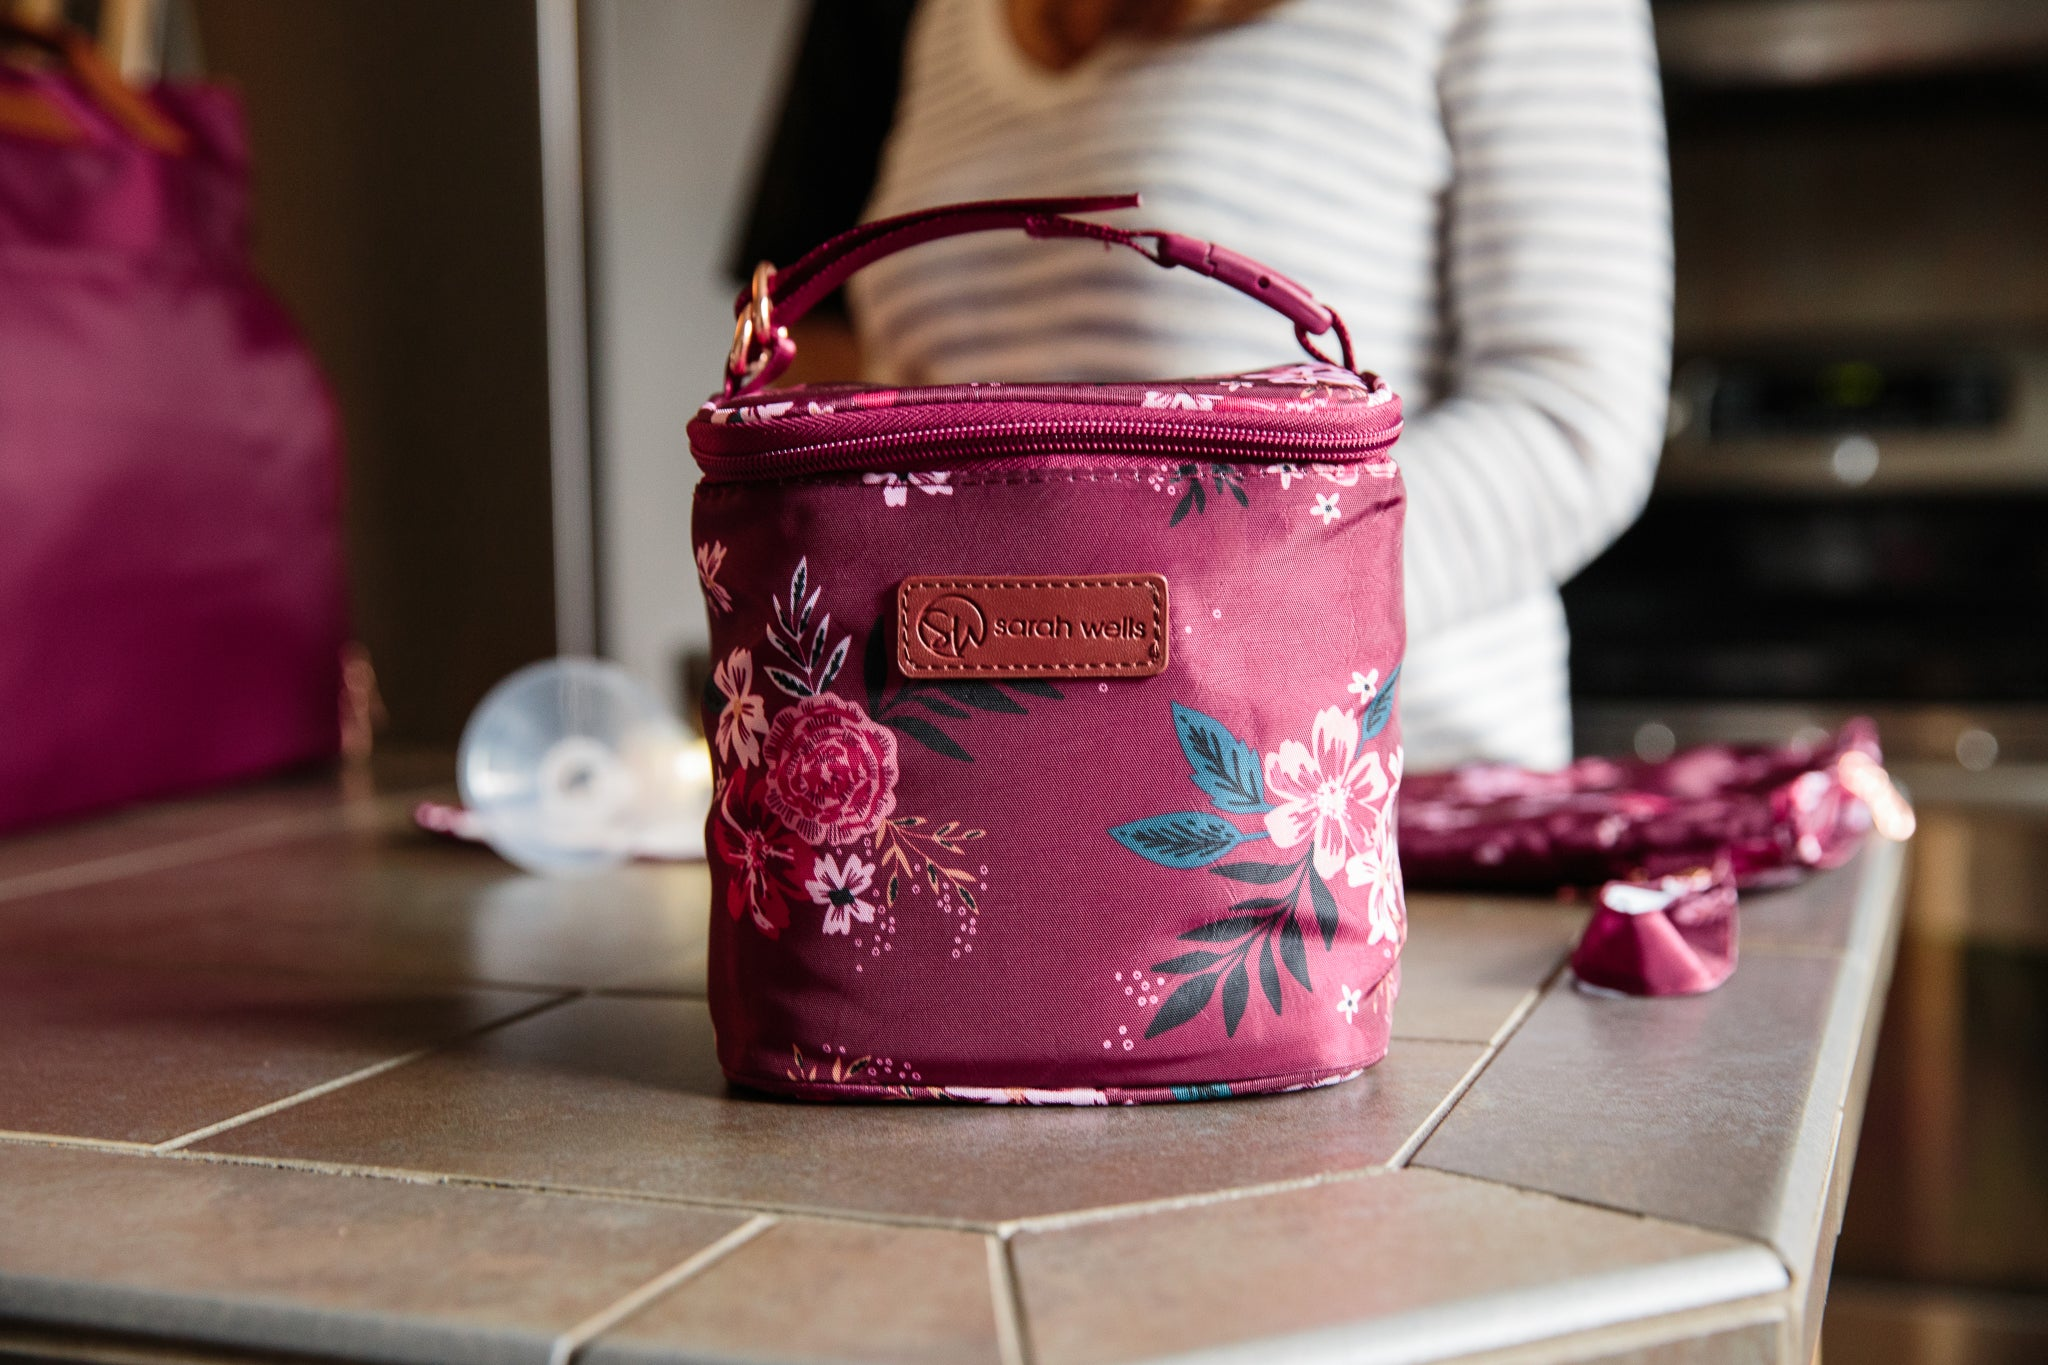 10f9989ccdd20 Cold Gold (Berry Bloom) – Sarah Wells Bags